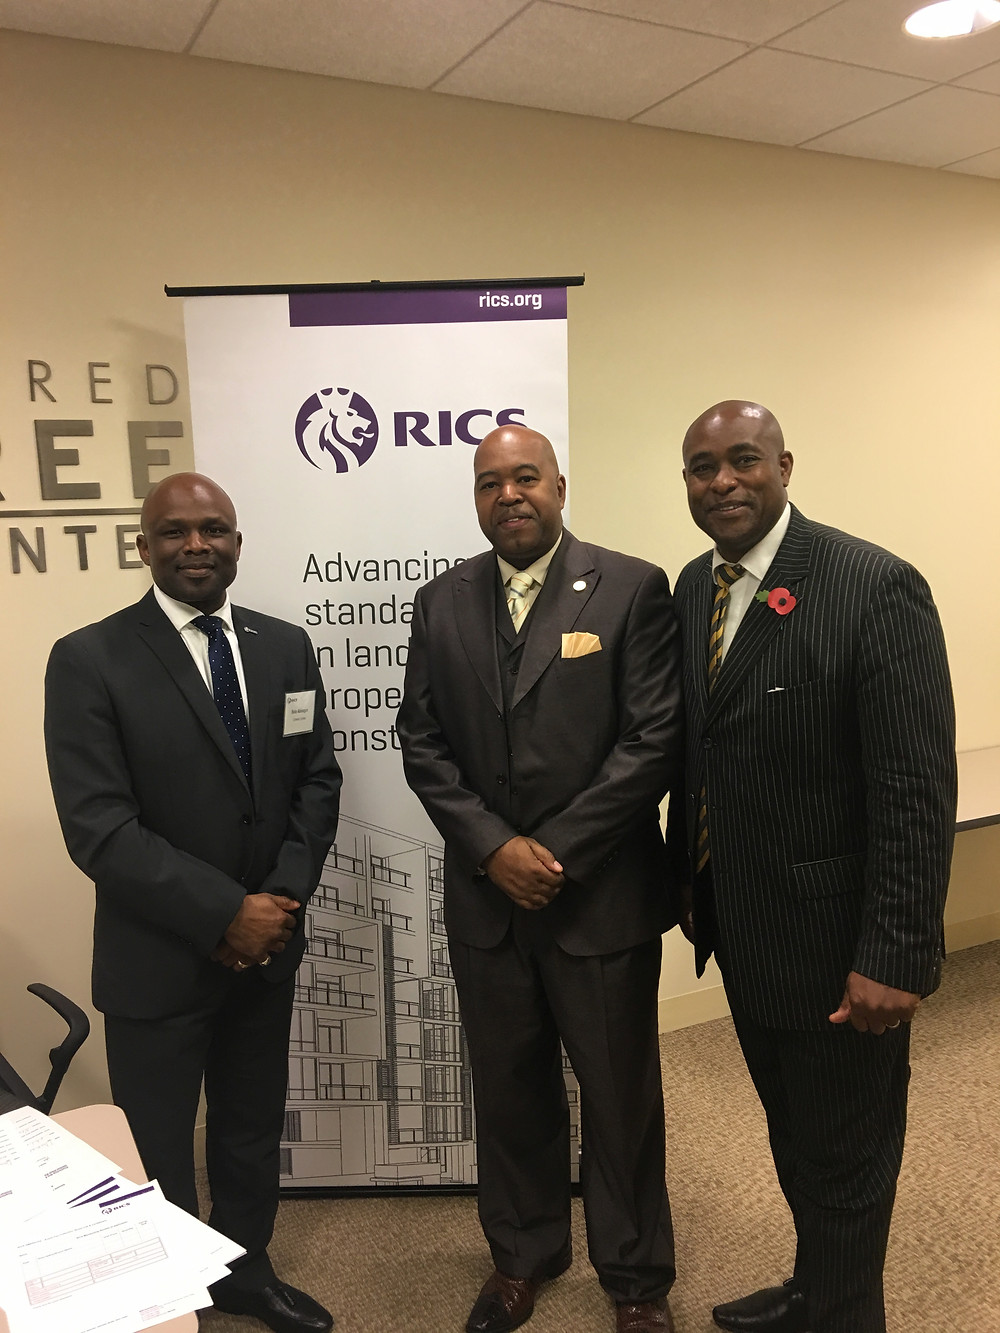 Bola Abisogun [left] with representatives from the City of Atlanta, Larry Scott [middle] and Karl Walbrook [right]